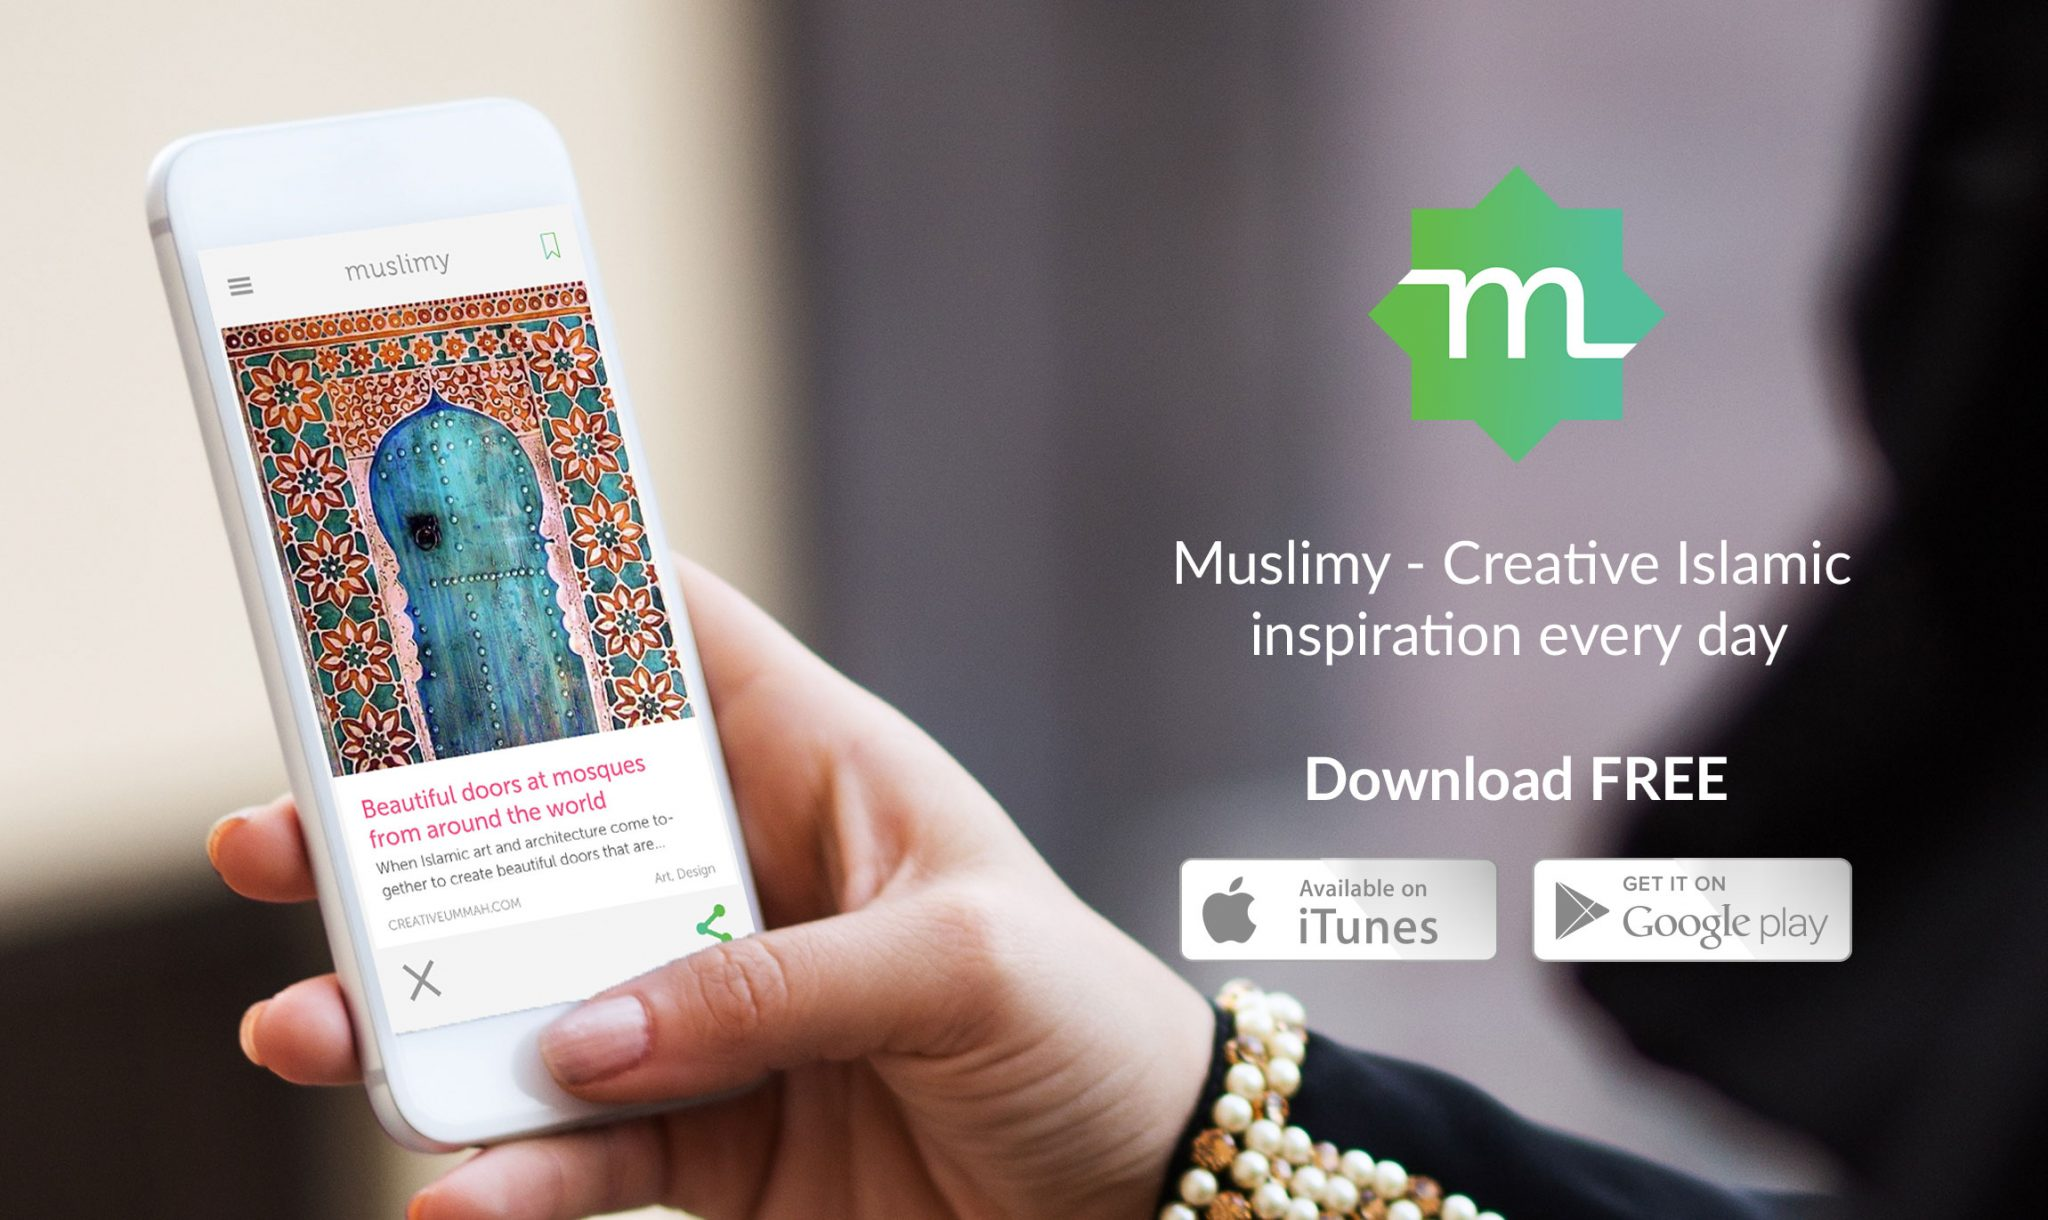 Muslimy - the awesome new app with daily content! - The